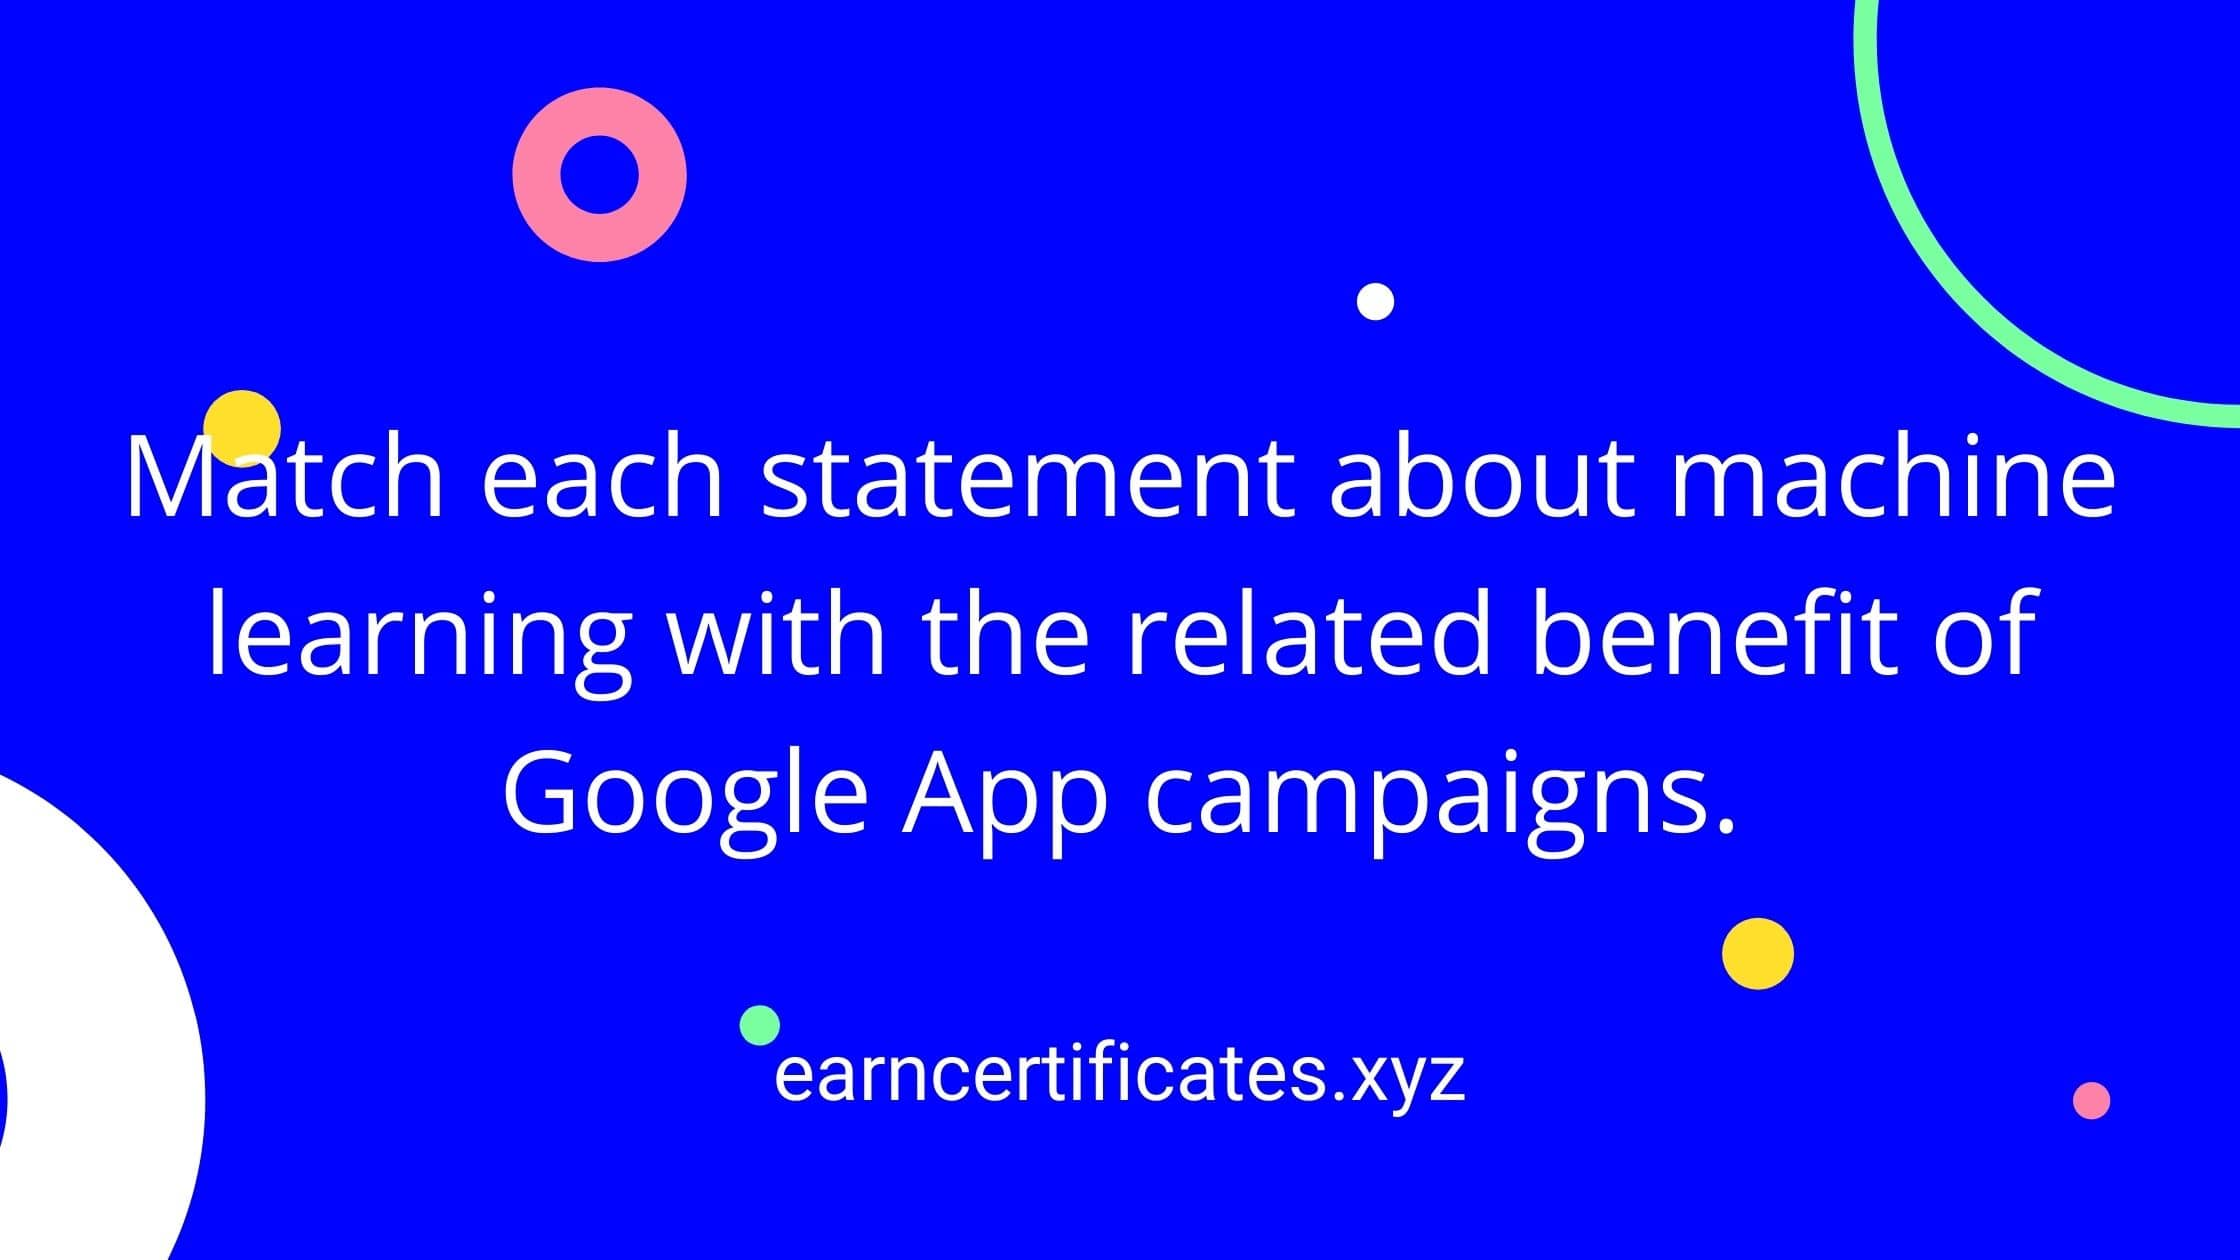 Match each statement about machine learning with the related benefit of Google App campaigns.